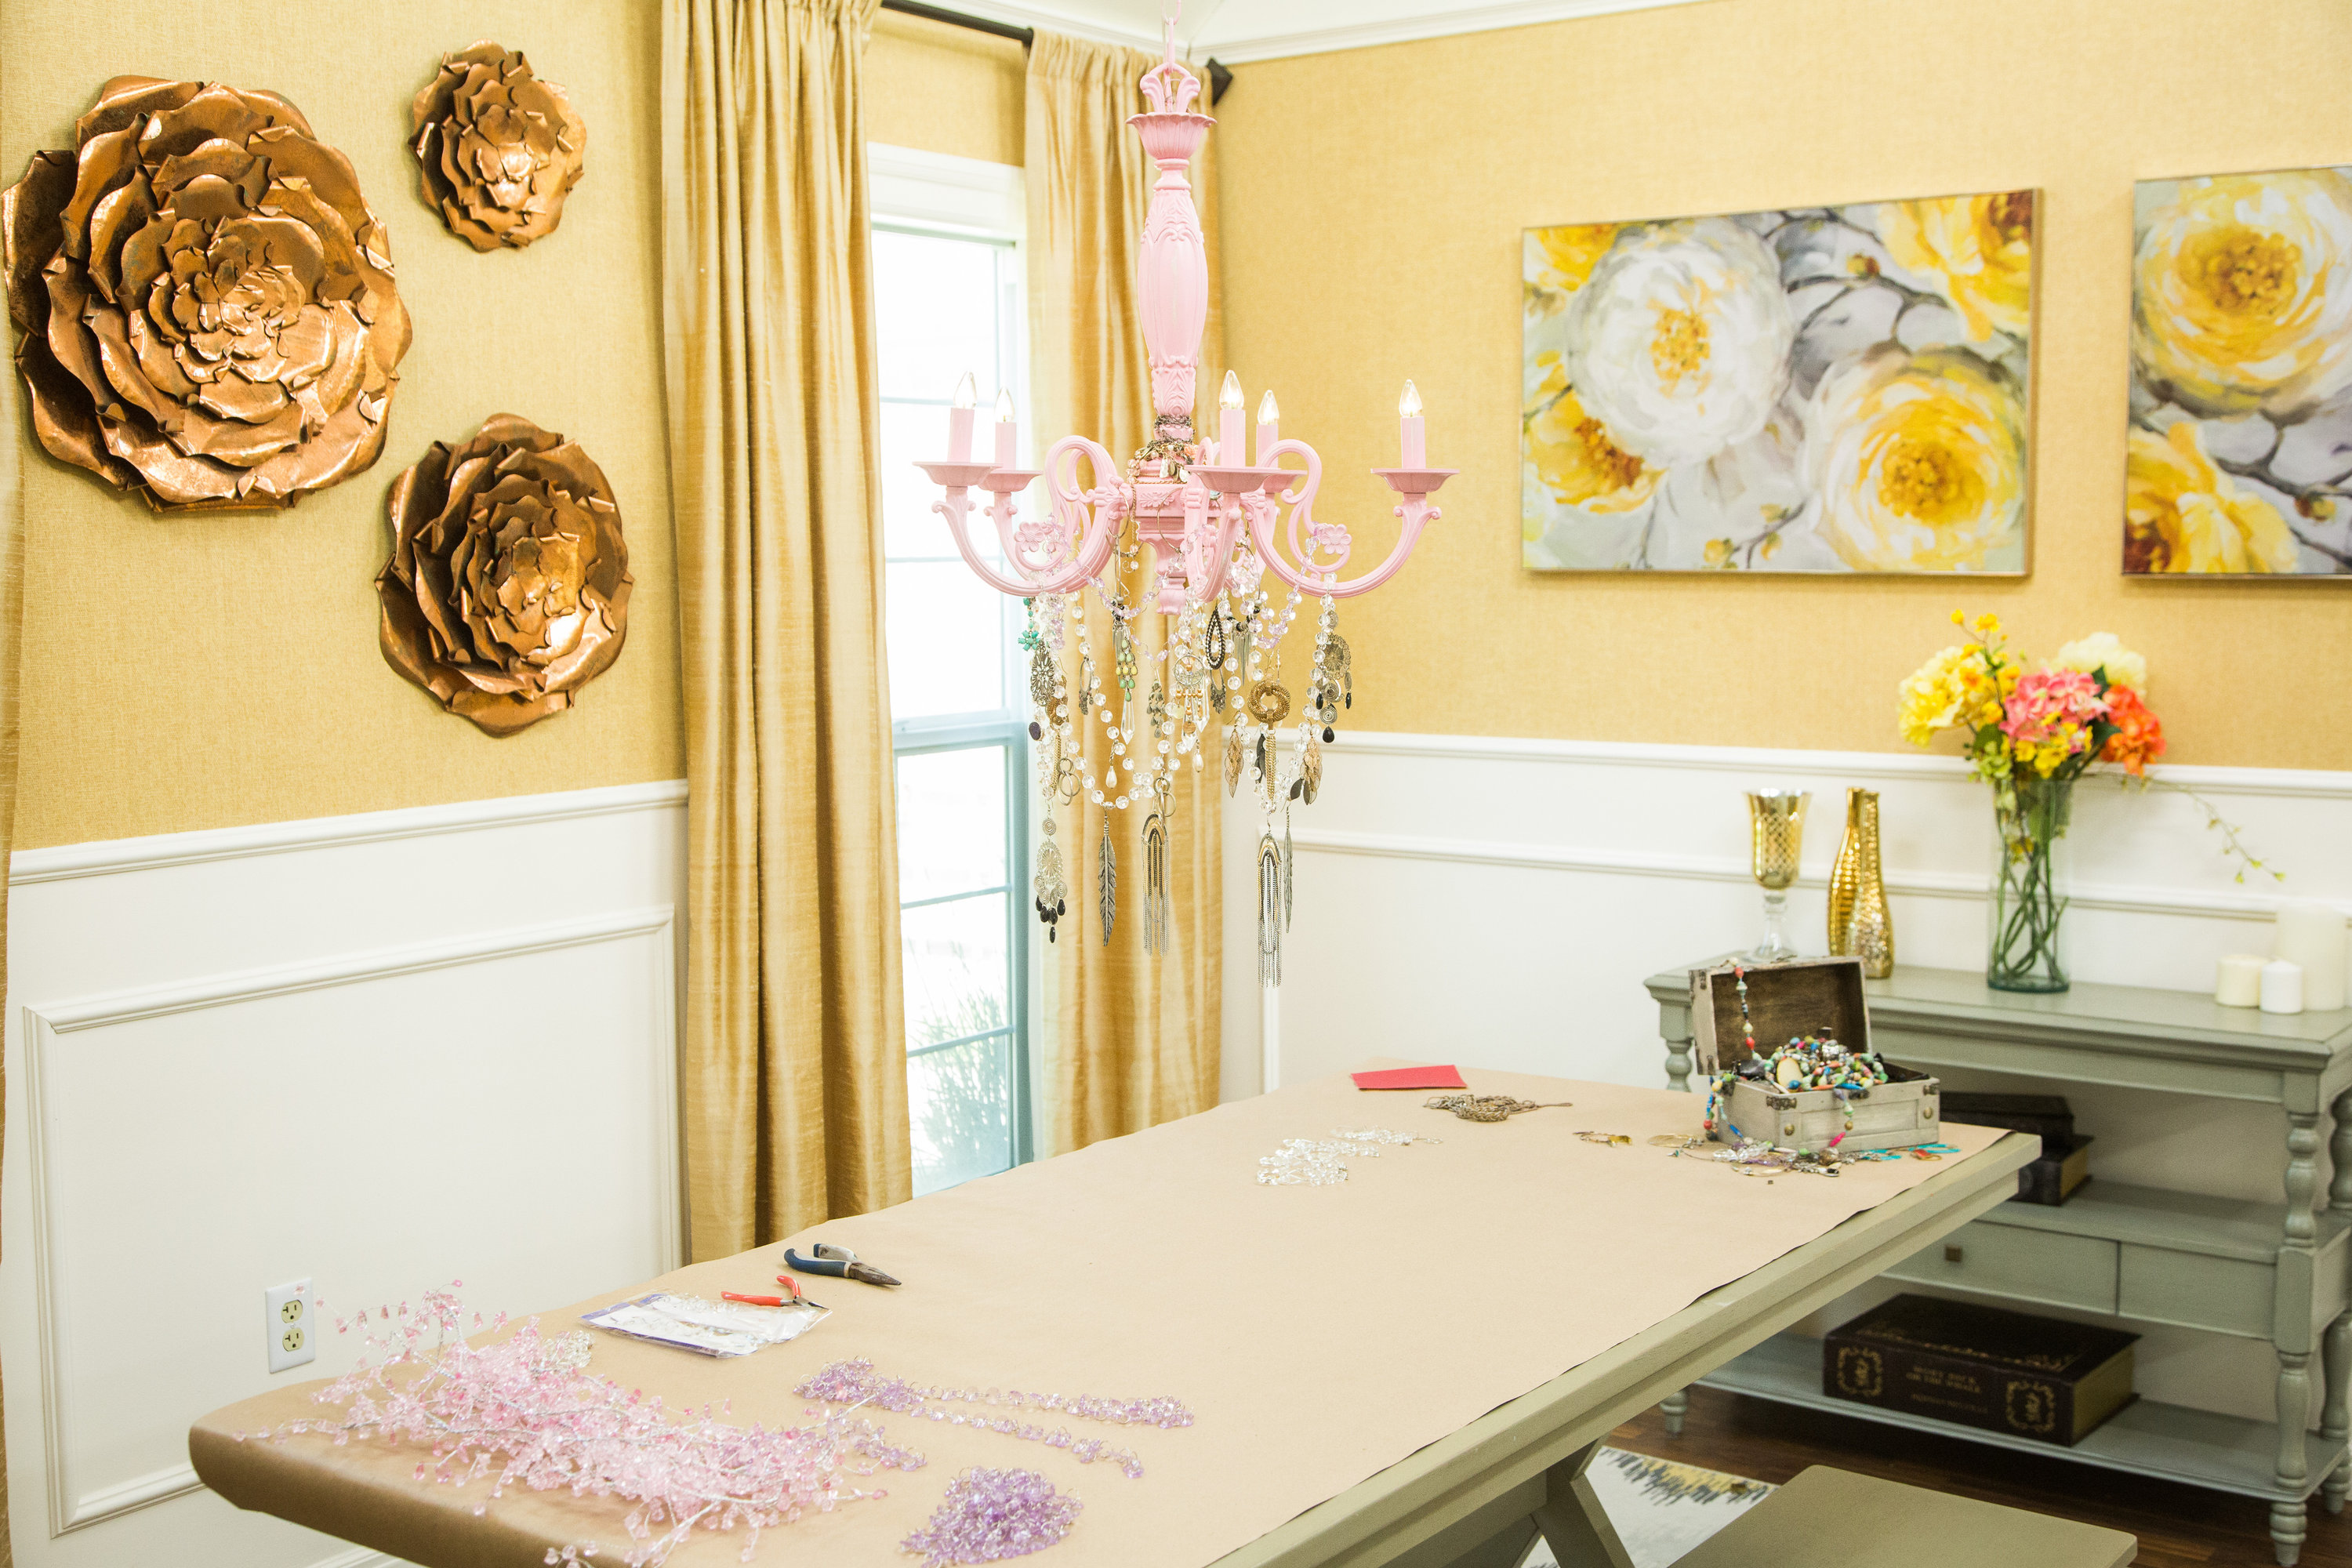 How To Home & Family Orly Shani and Kristin Smith s DIY Crystal